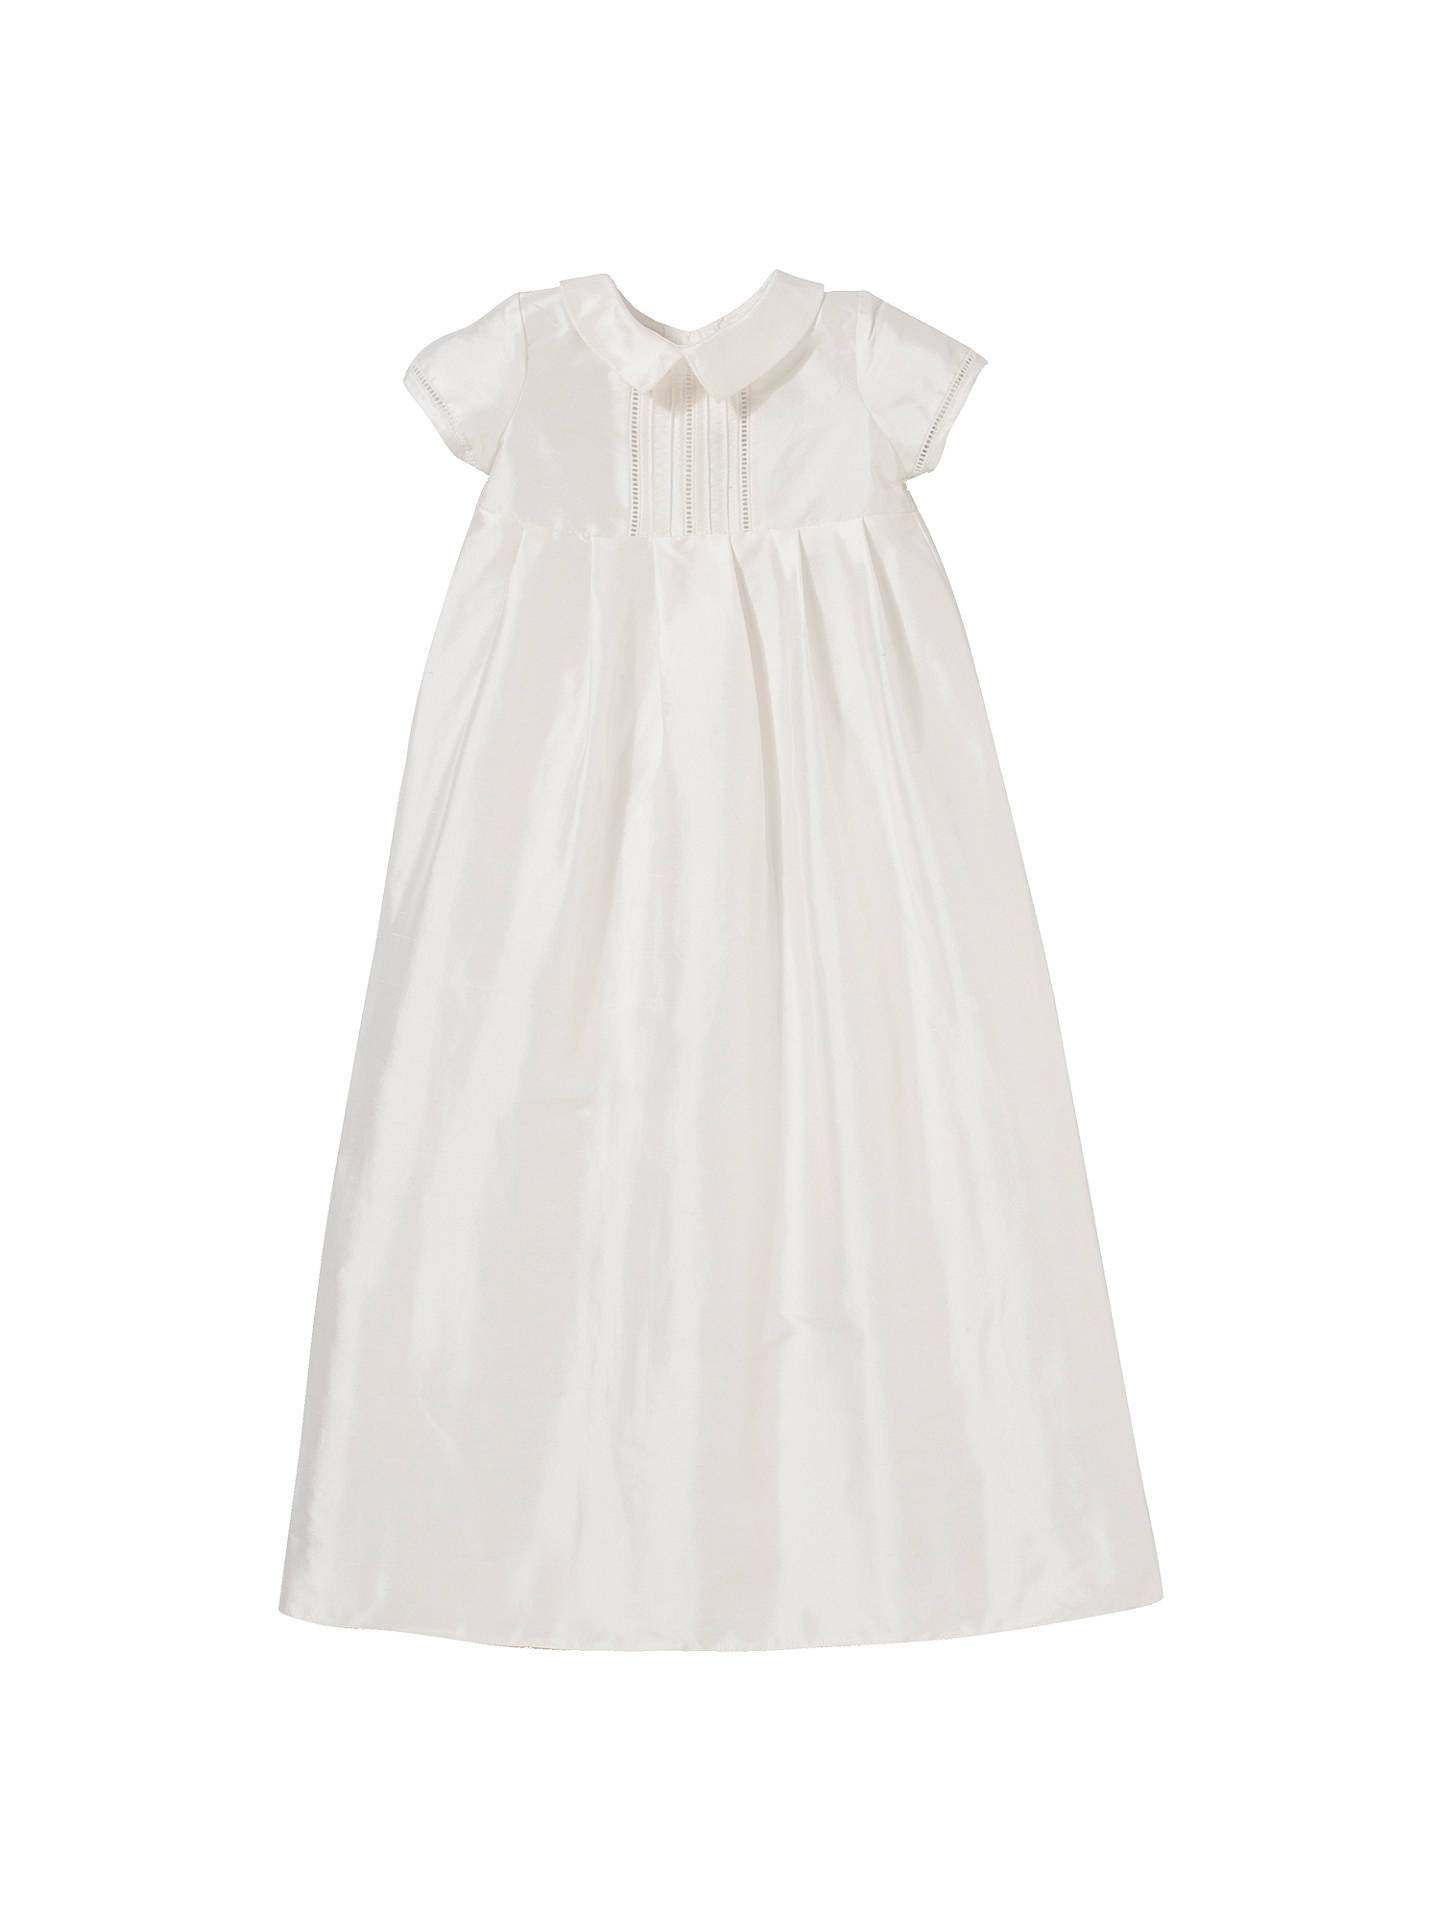 96648b9a2 Buy John Lewis & Partners Unisex Long Christening Gown, Cream, 0-3 months